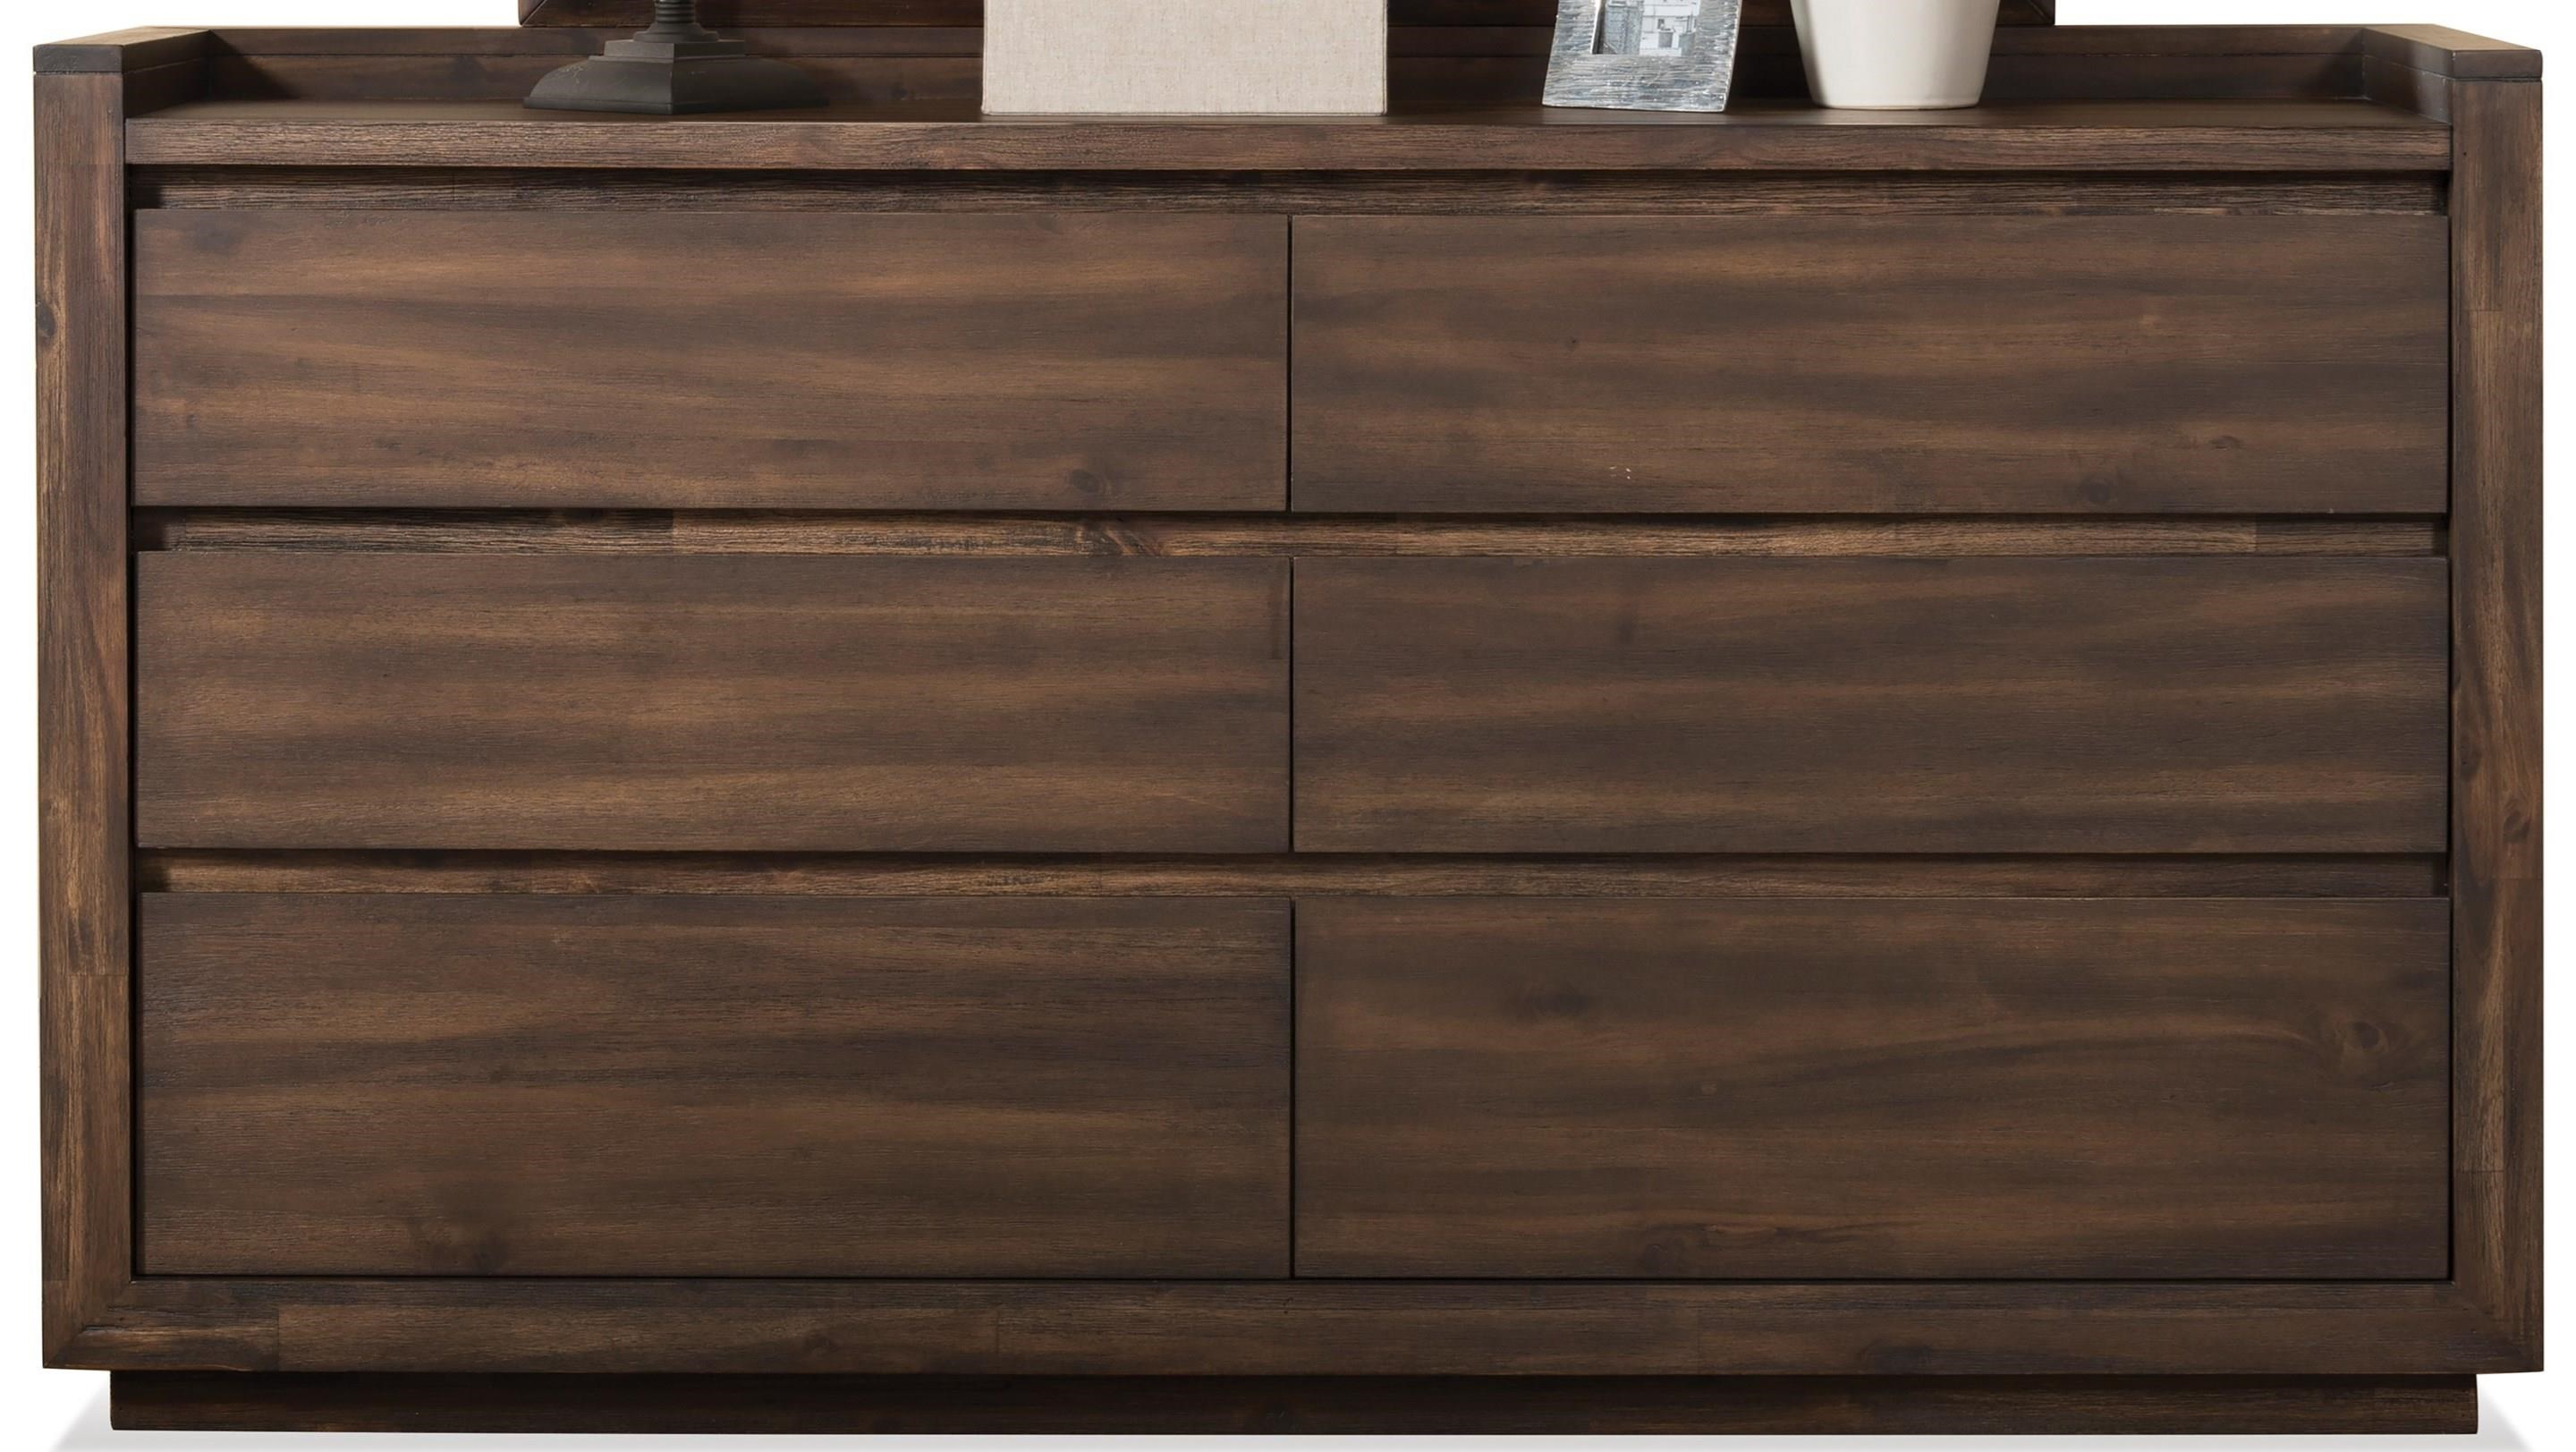 Riverside Furniture Modern Gatherings Dresser - Item Number: 15360